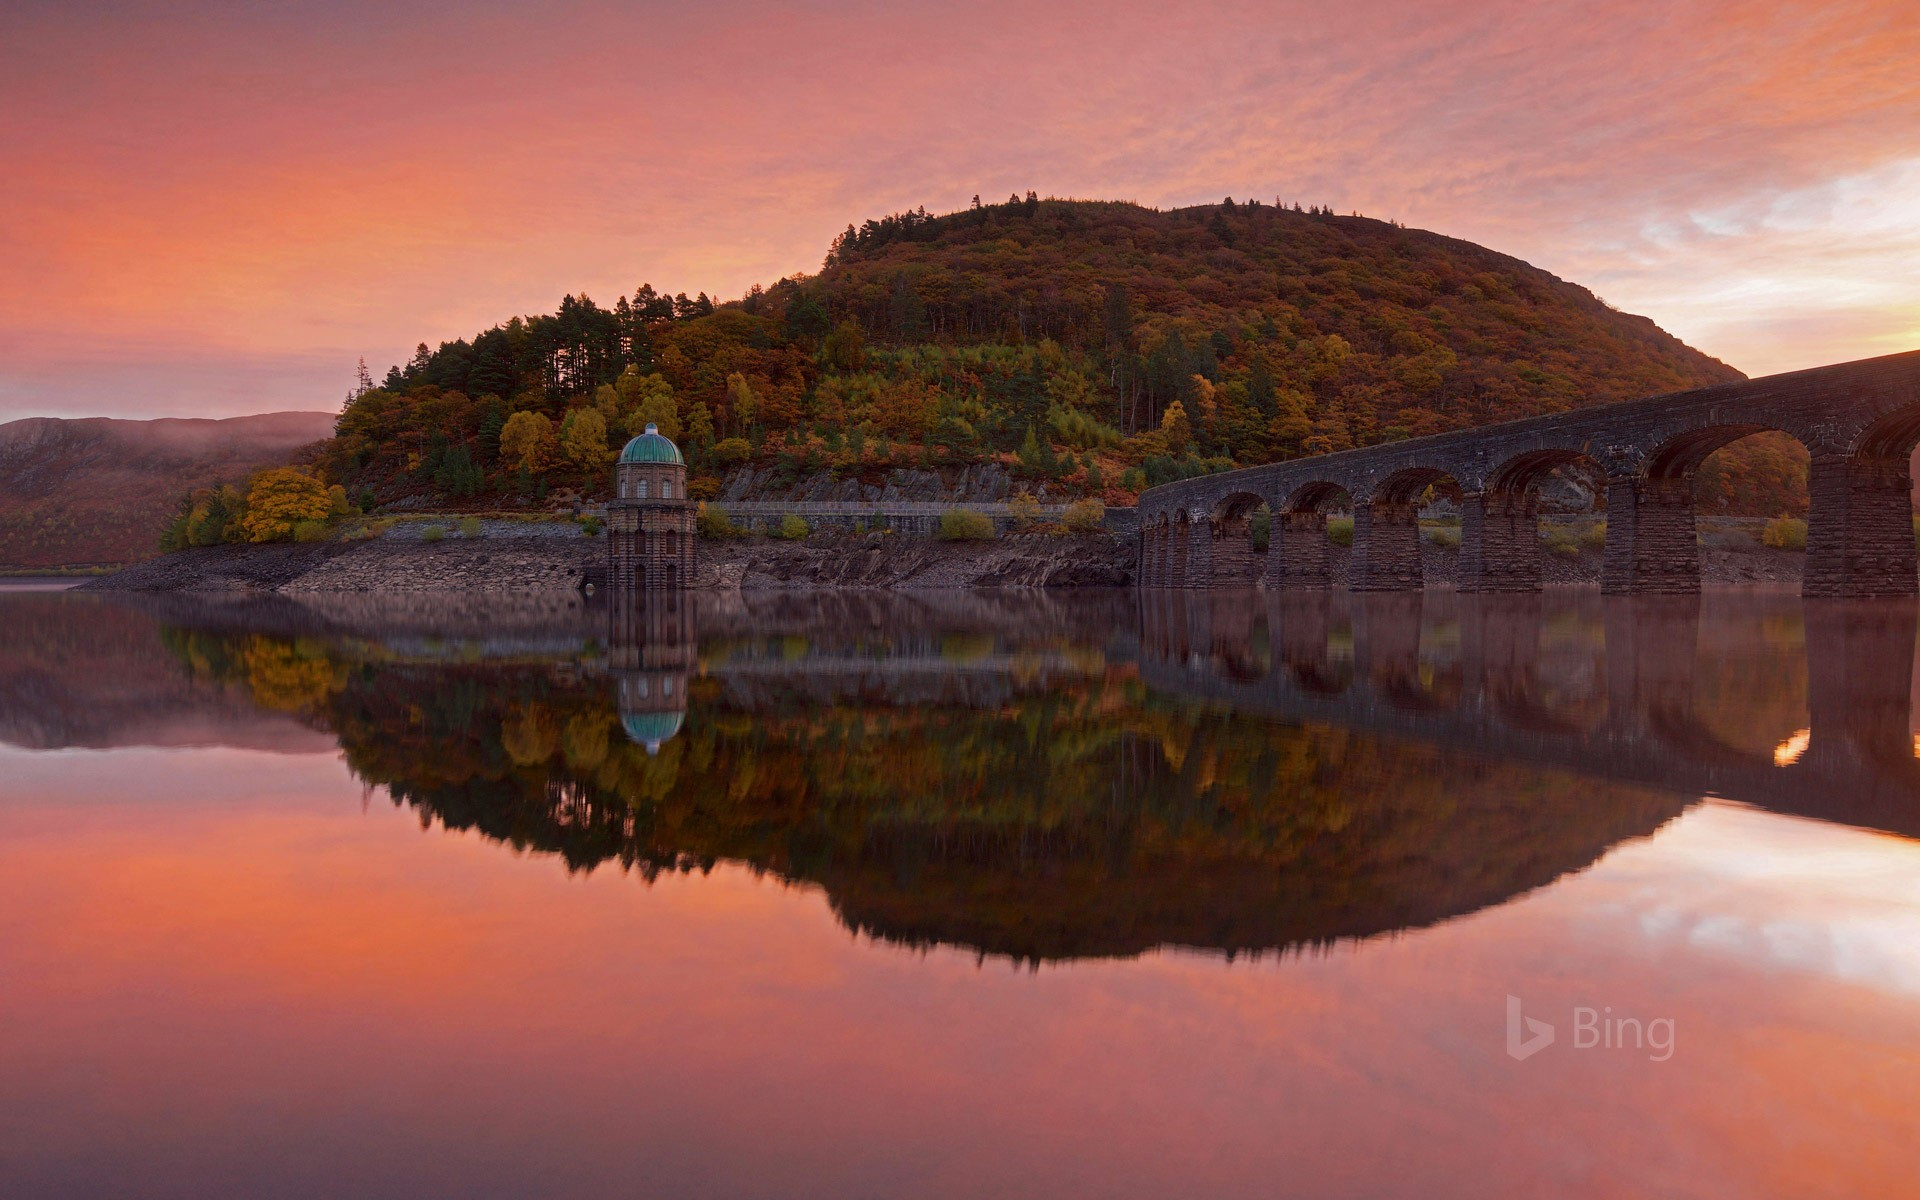 Garreg Ddu Dam in the Elan Valley of Wales